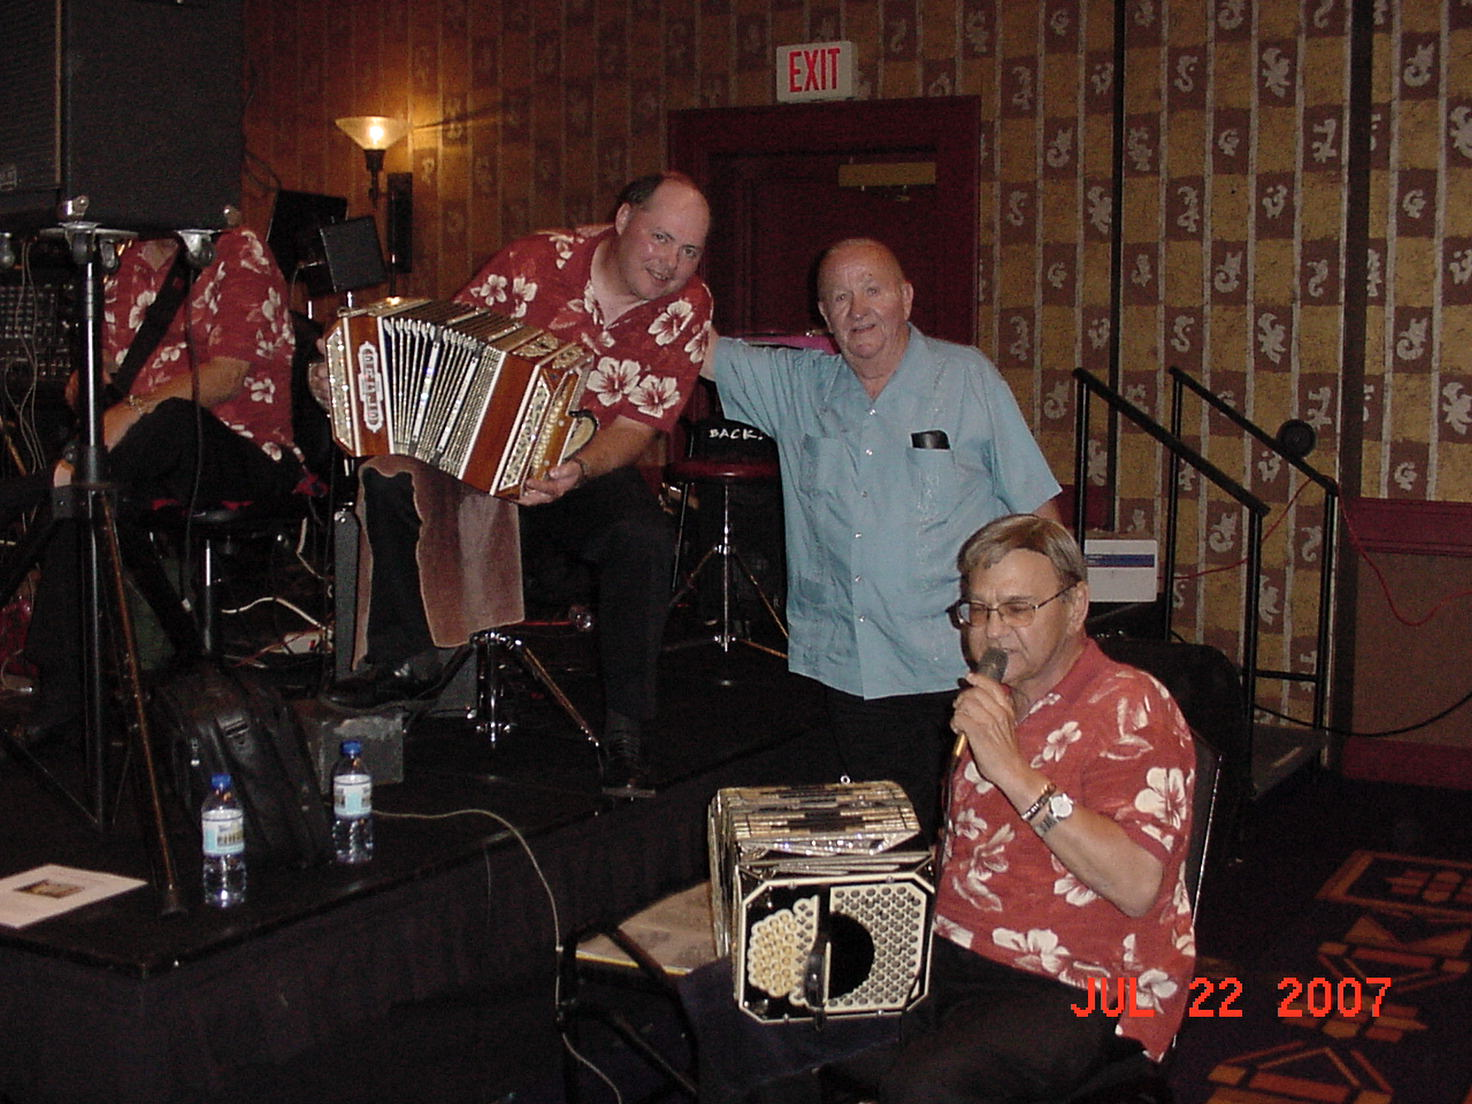 Surrounded by my favorite concertina players; Tom Kula and Casey Homel at the casino in Green Bay, WI